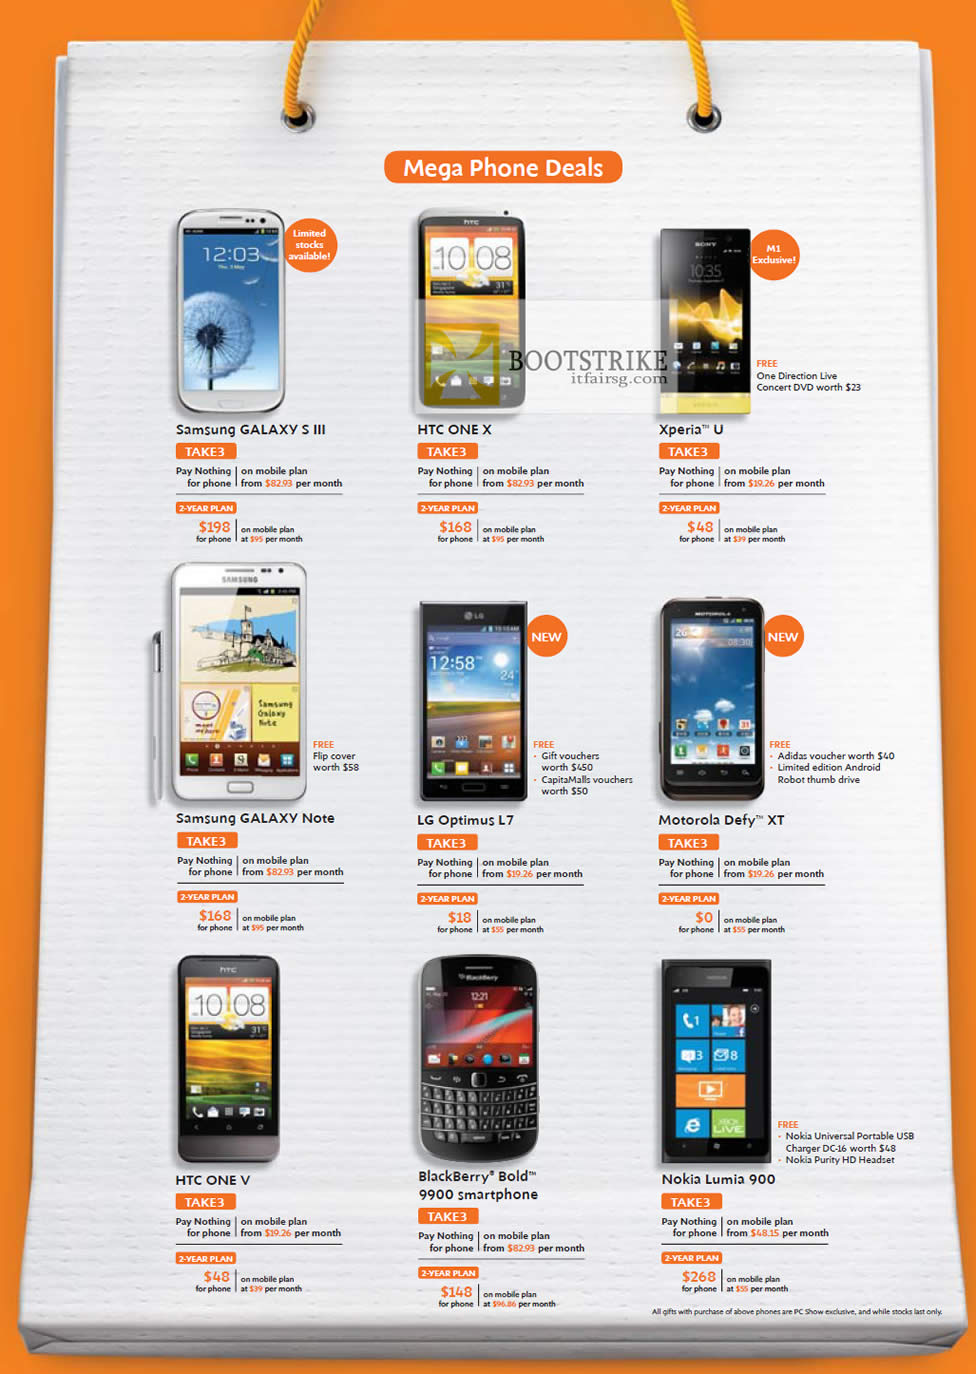 PC SHOW 2012 price list image brochure of M1 Mobile Samsung Galaxy S III, Note, HTC One X, V, Sony Xperia U, LG Optimus L7, Defy XT, Blackberry Bold 9900, Nokia Lumia 900